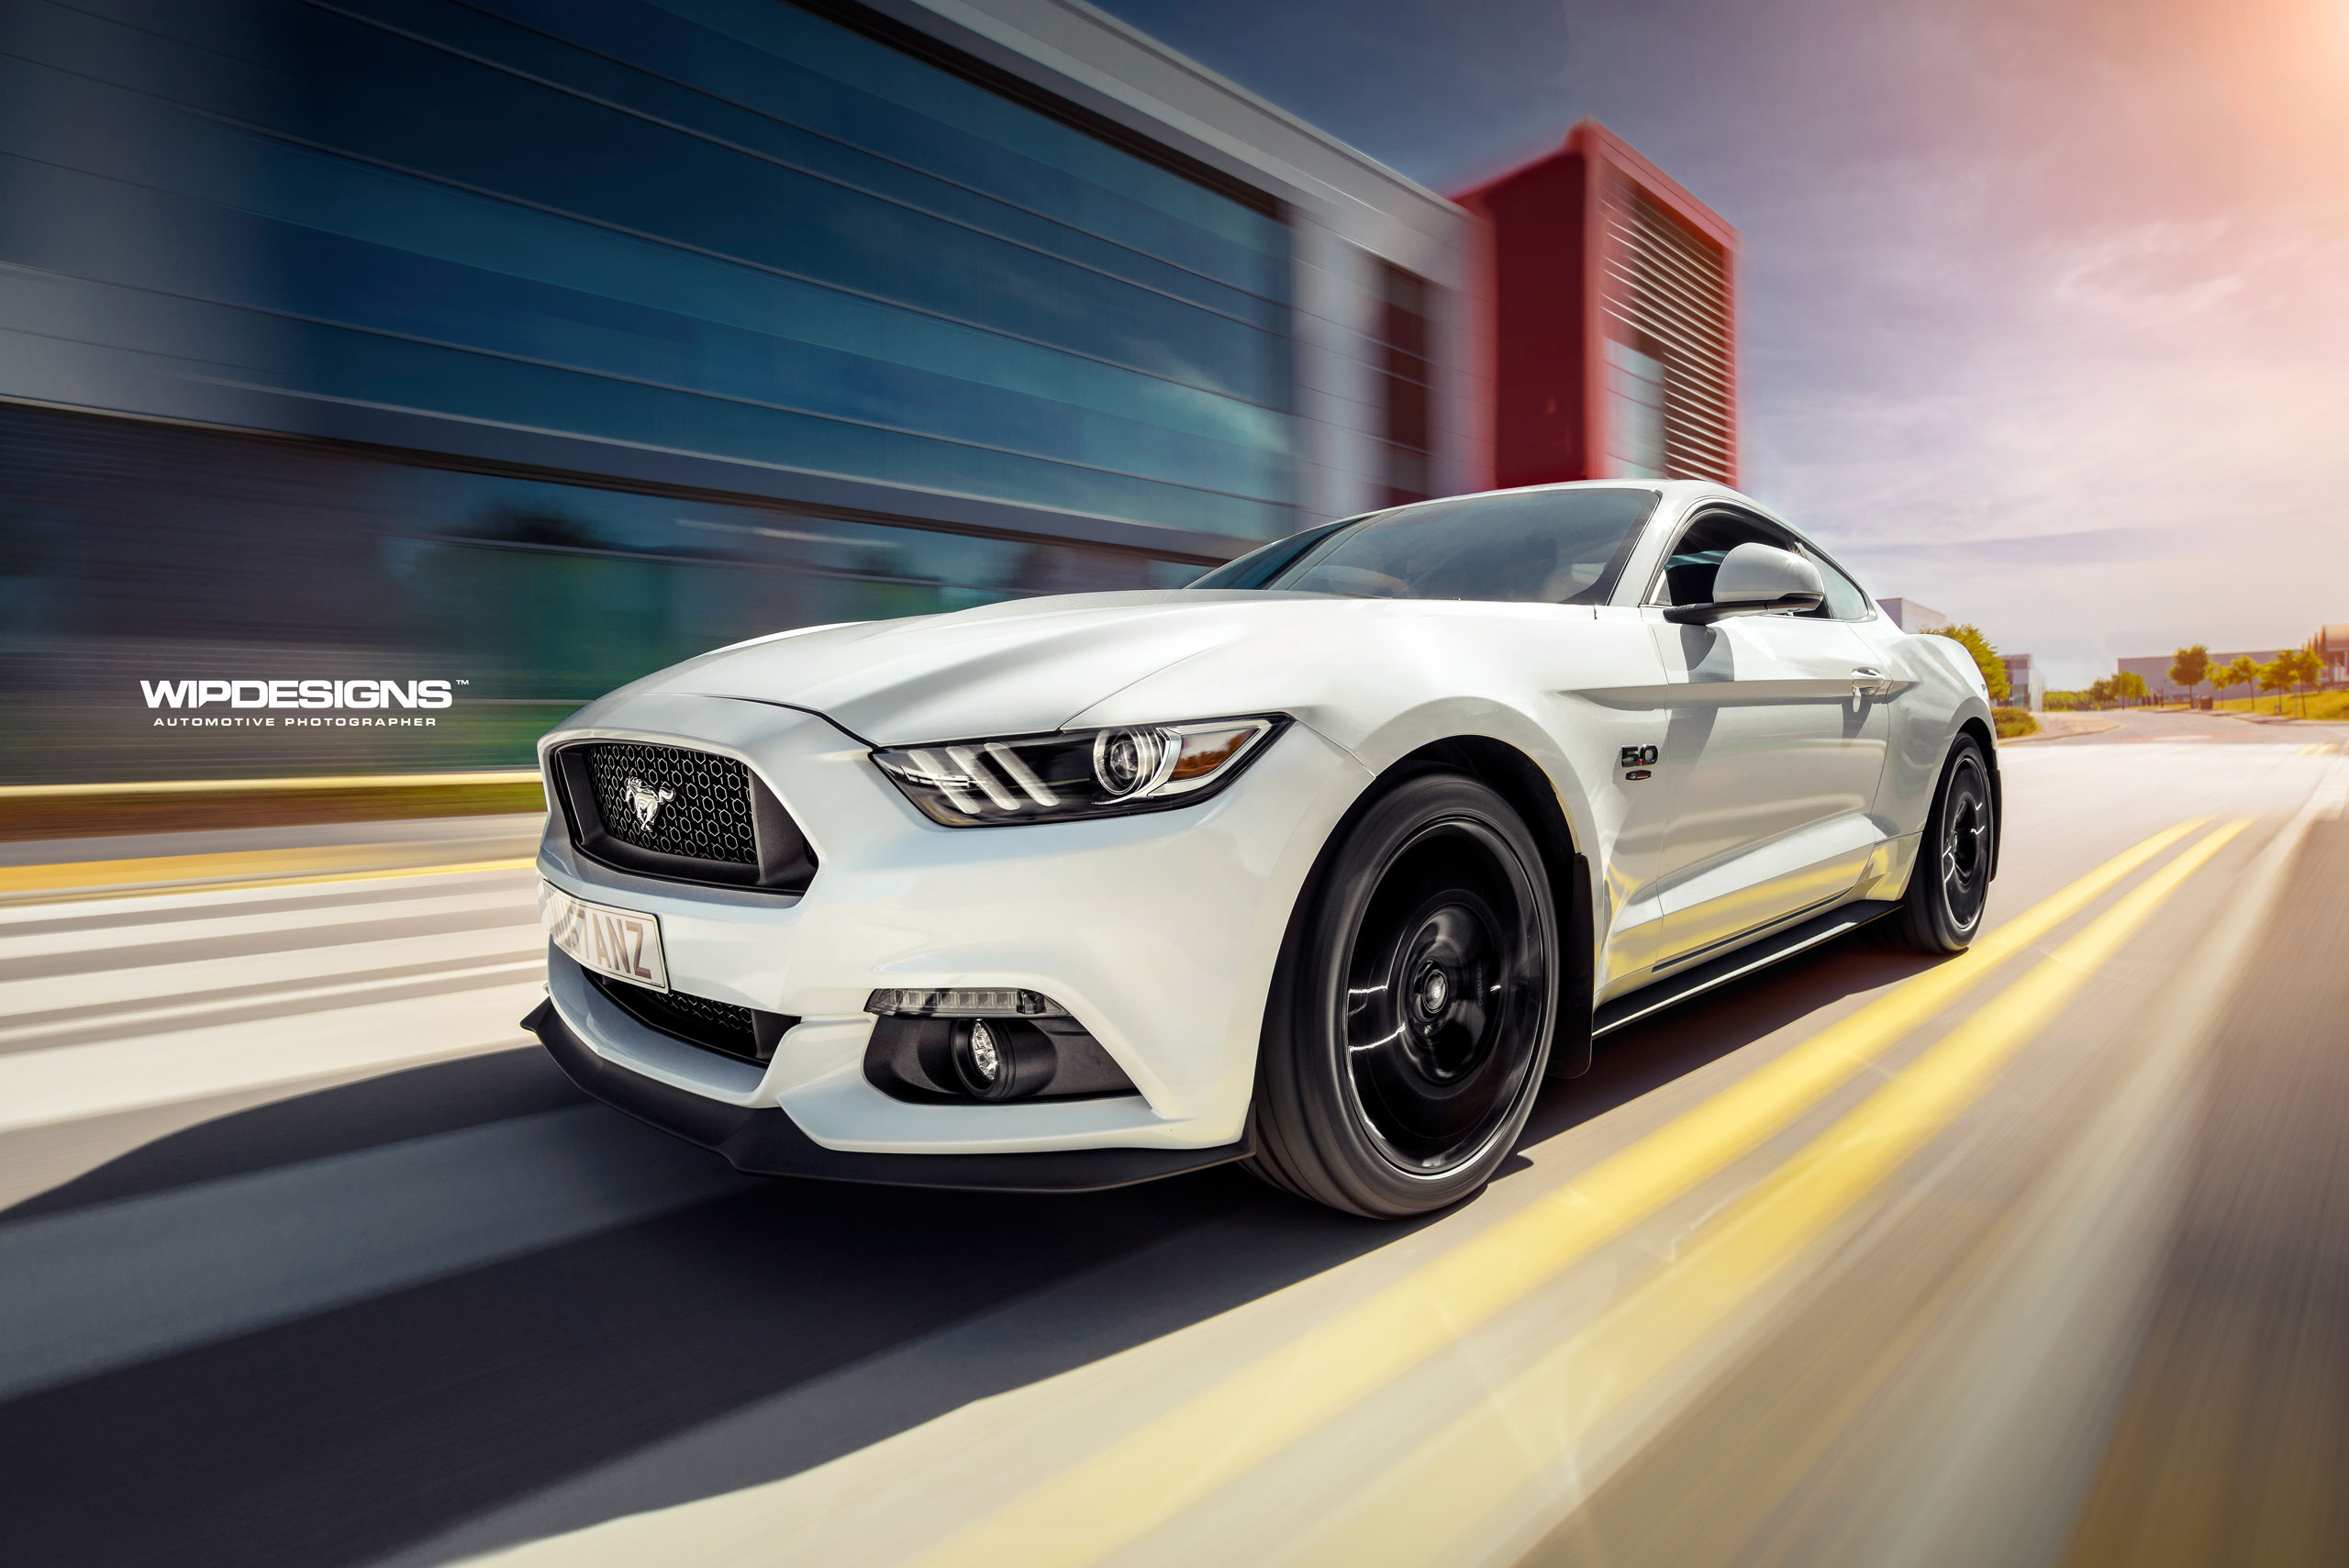 mustang wipdesigns automotive photographer sheffield